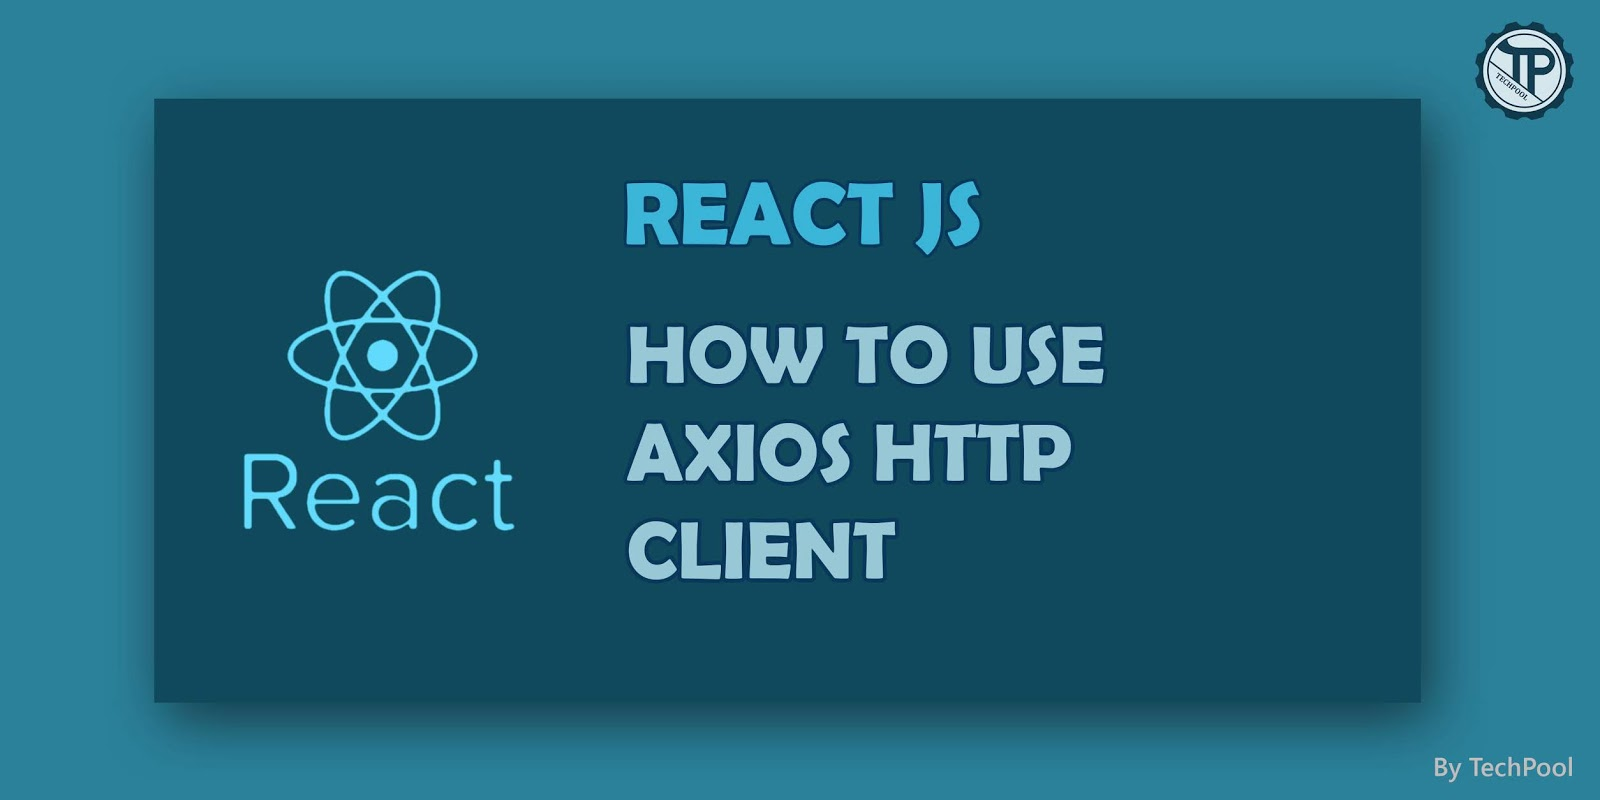 Axios HTTP Client with React JS